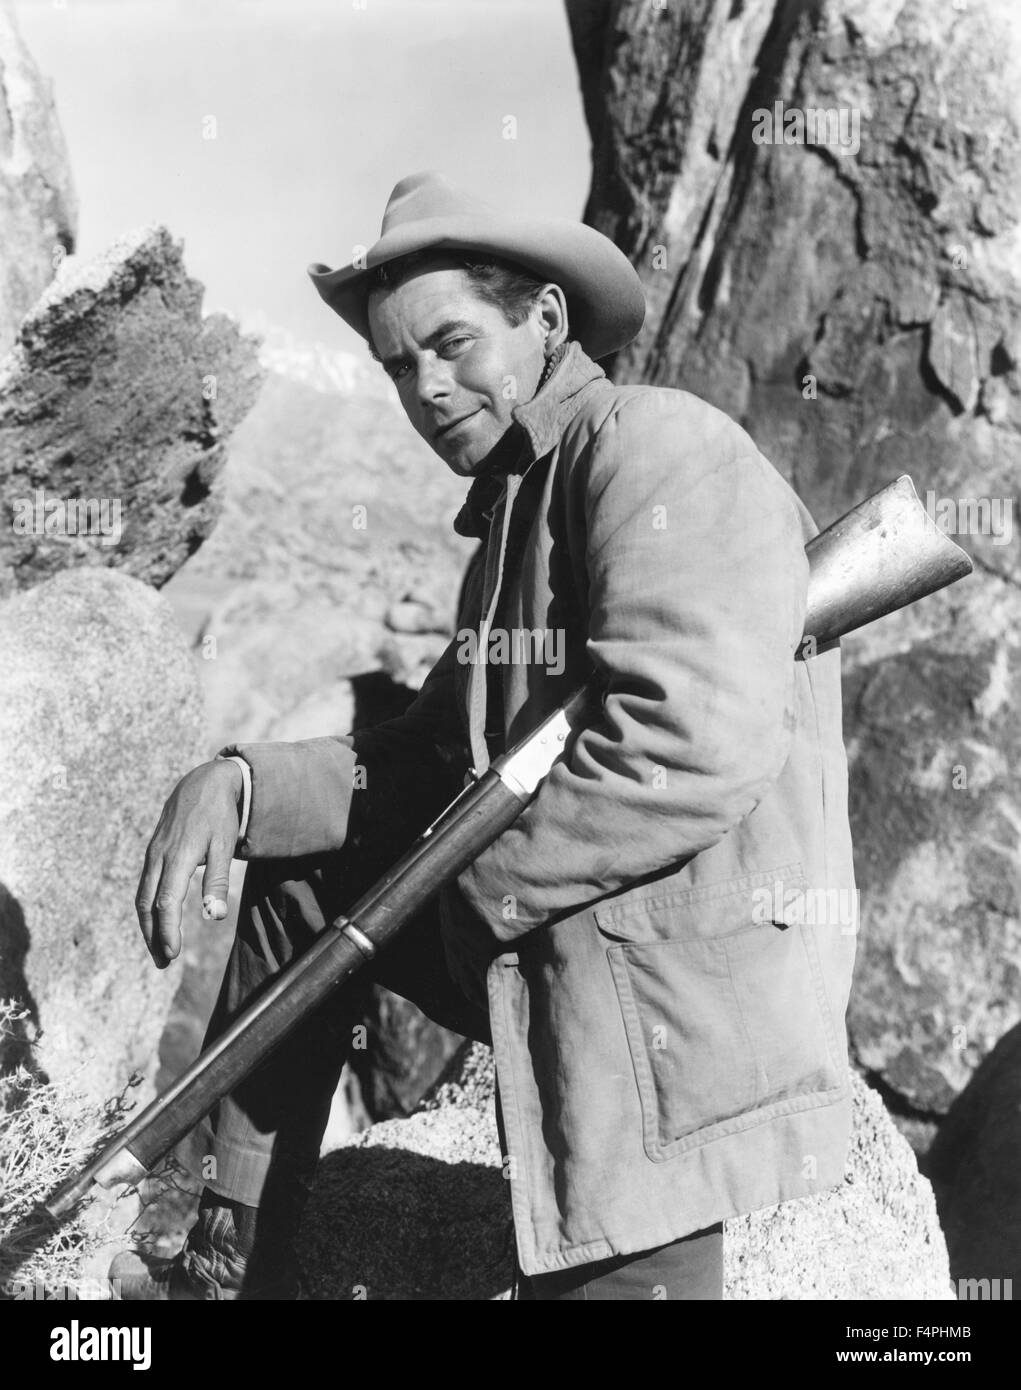 Glenn Ford / The Violent Men / 1955 directed by Rudolph Mate [Paramount Pictures] - Stock Image